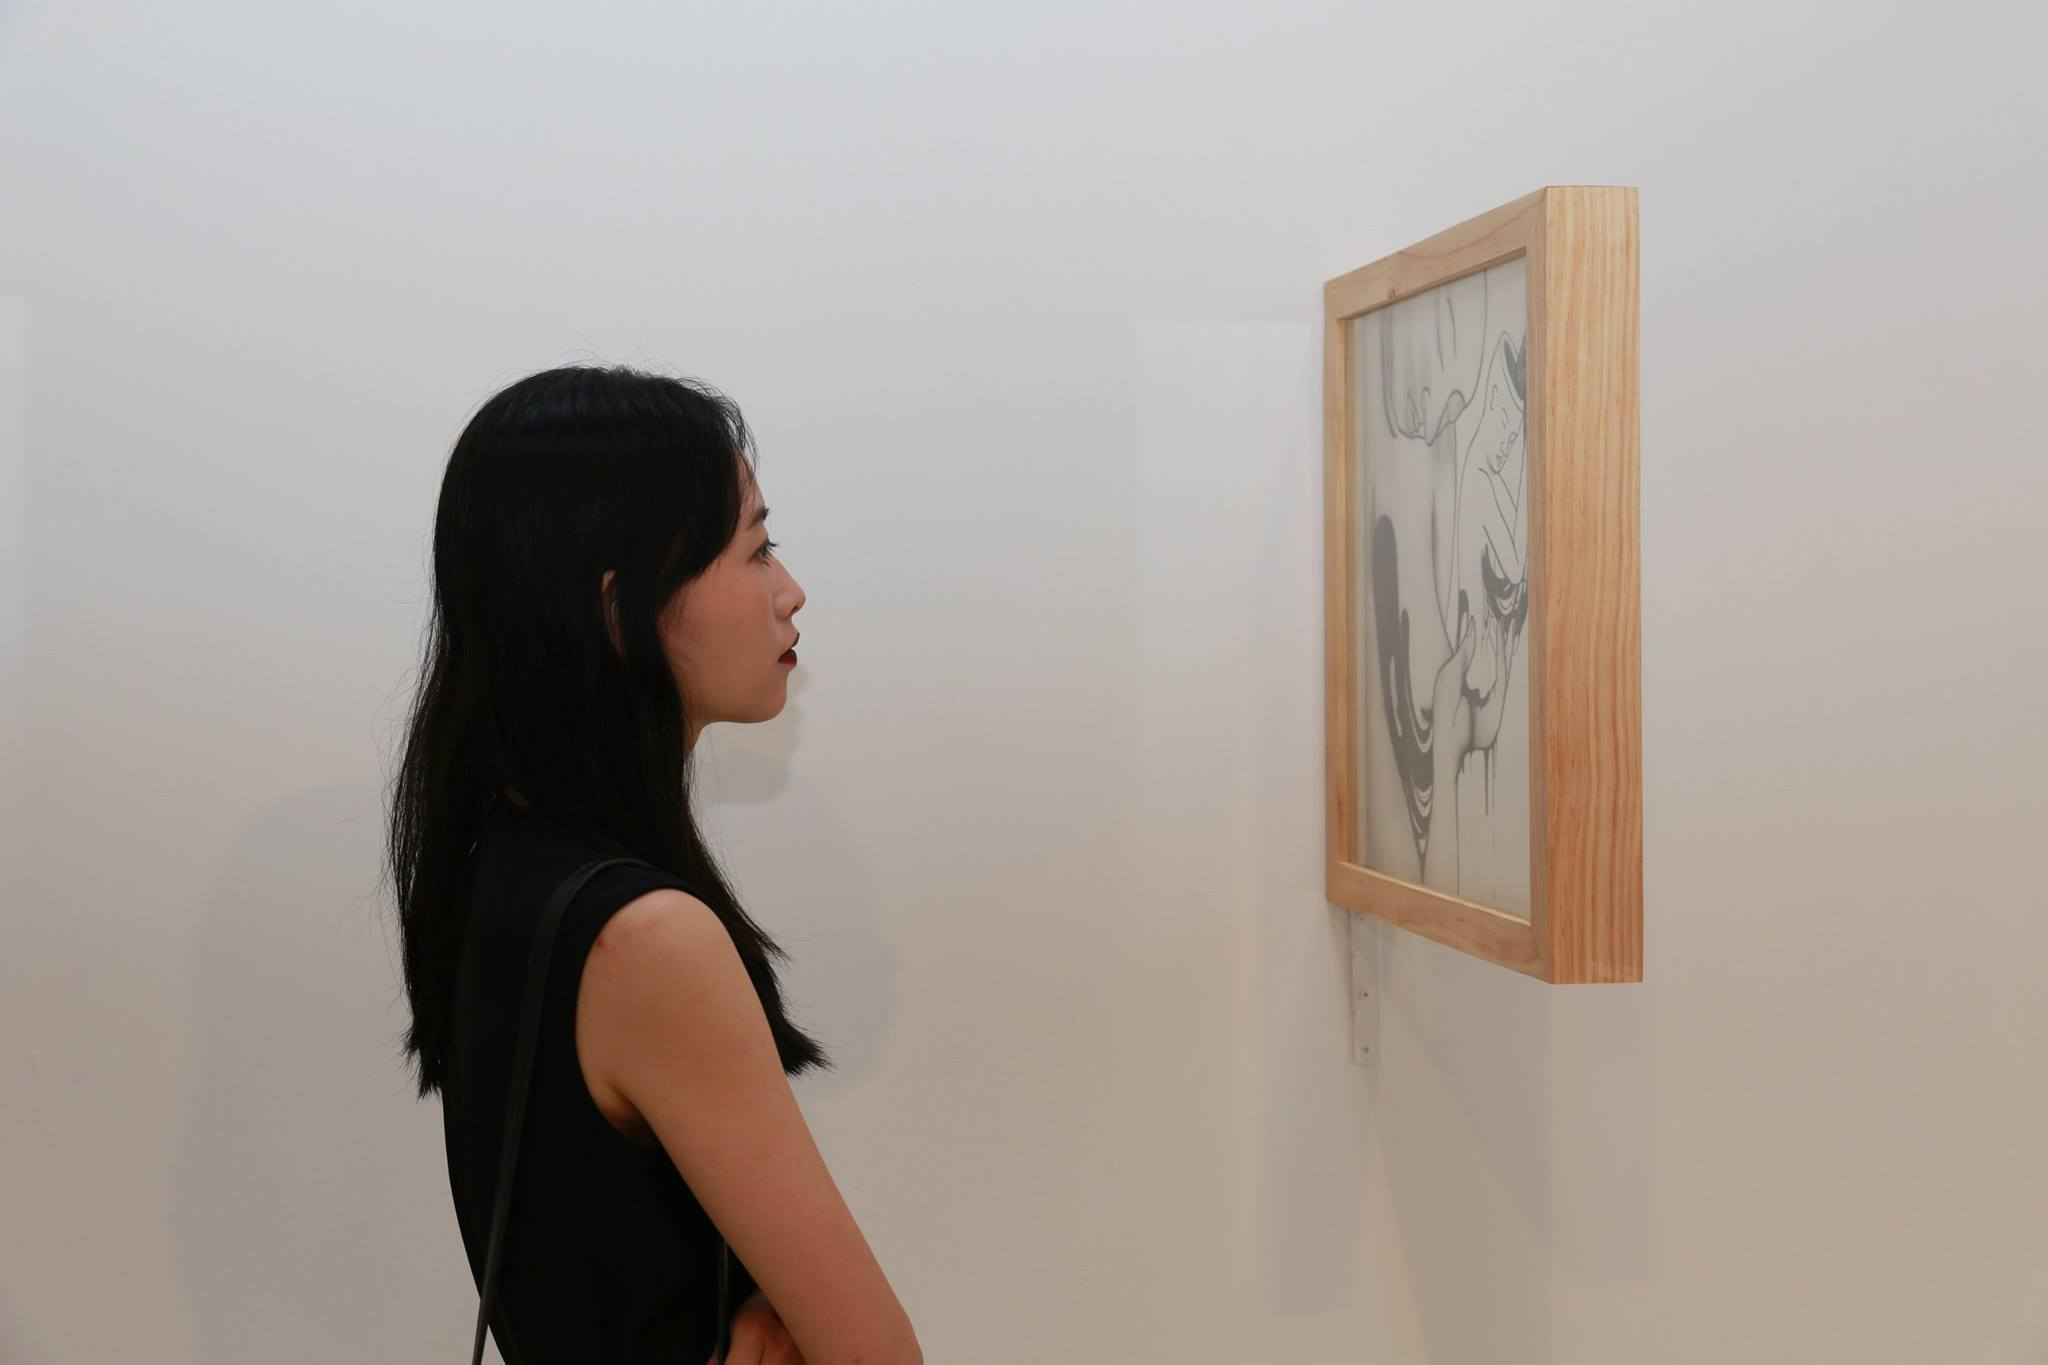 HOW TO VALUE A WORK OF ART?